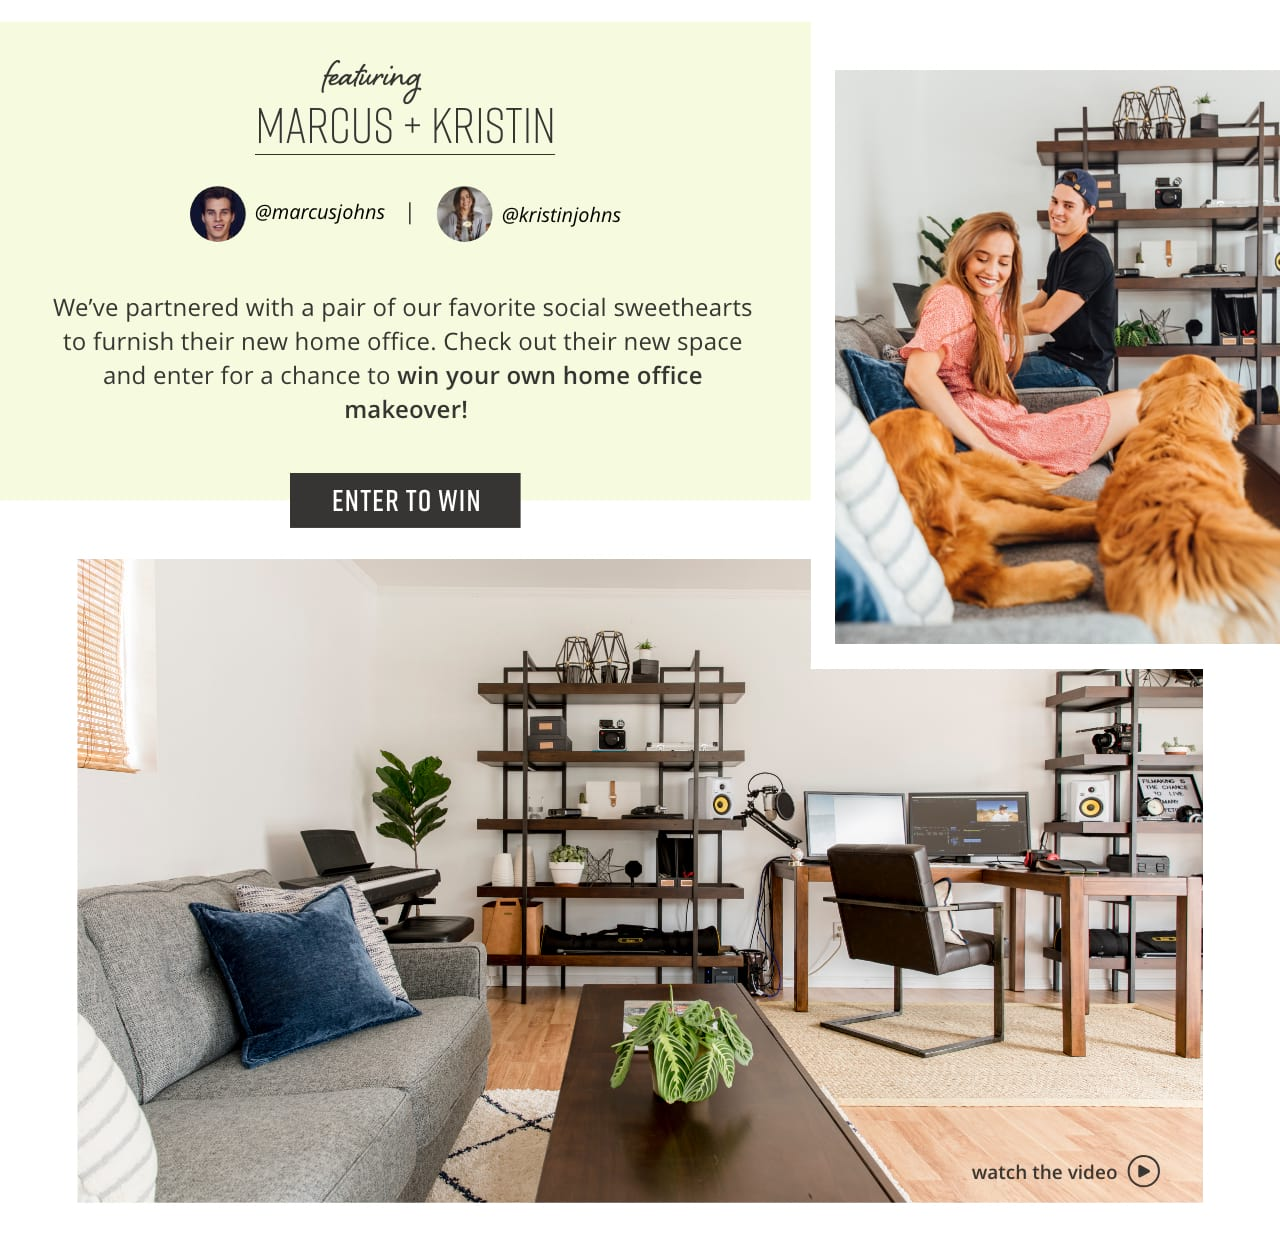 Marcus and Kristin Home Office Sweepstakes